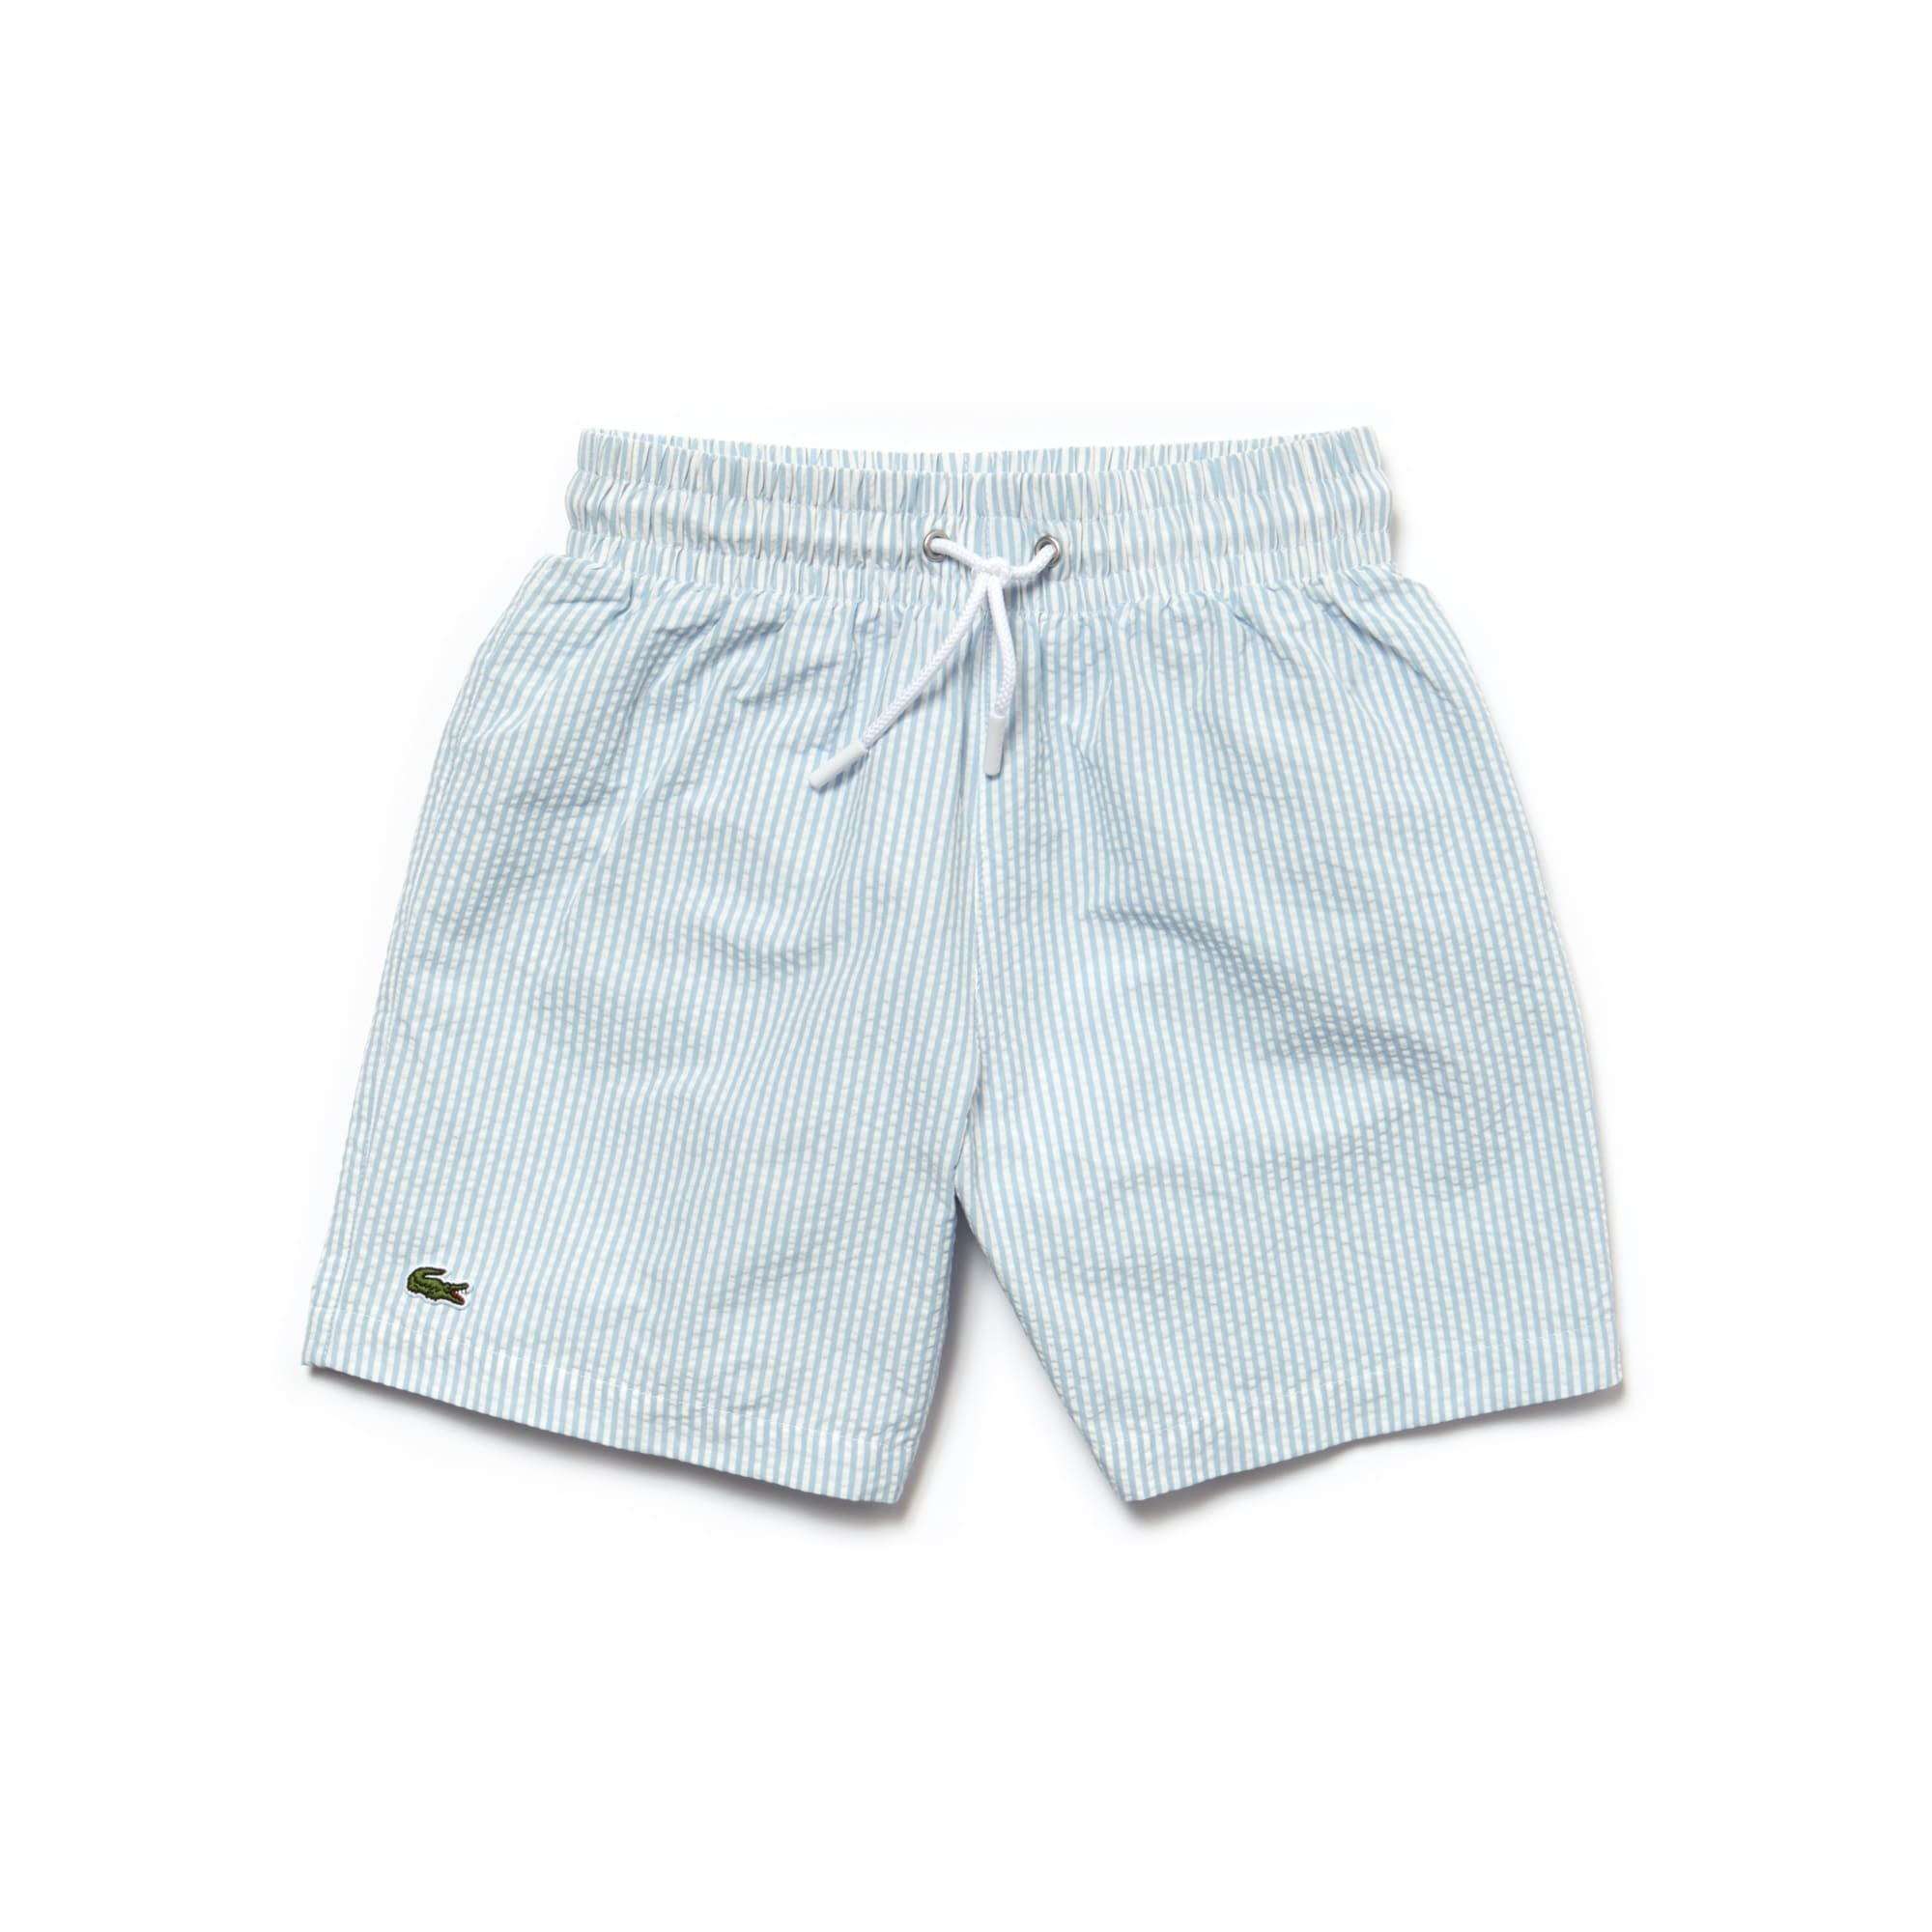 Boys' Cotton Seersucker Swimming Trunks